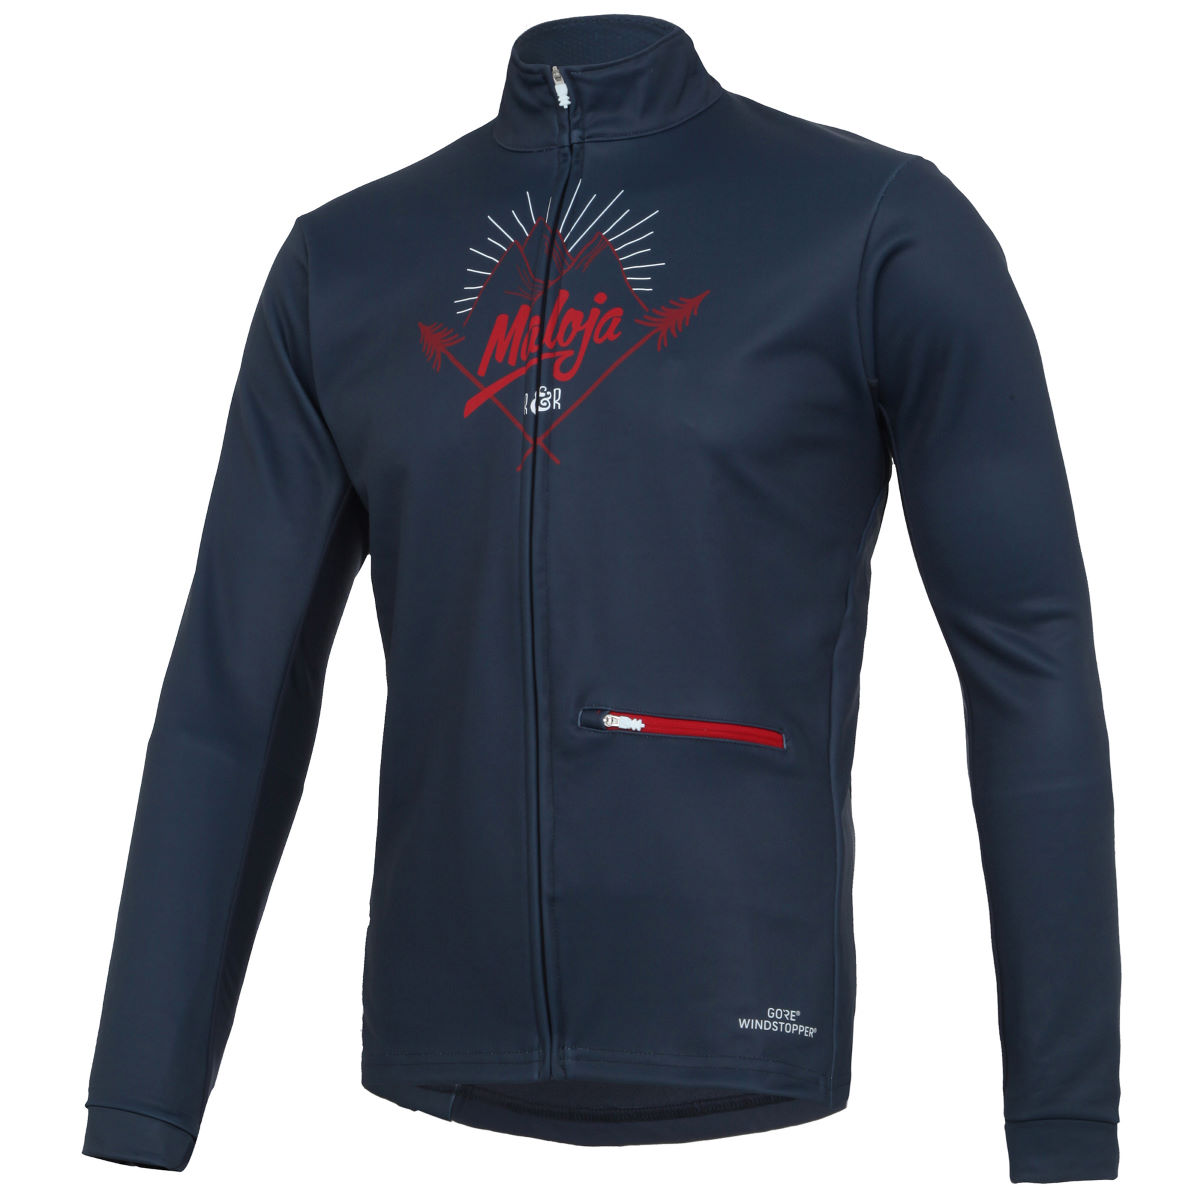 Veste coupe-vent Maloja BurtM. - XL Nightfall Coupe-vents vélo